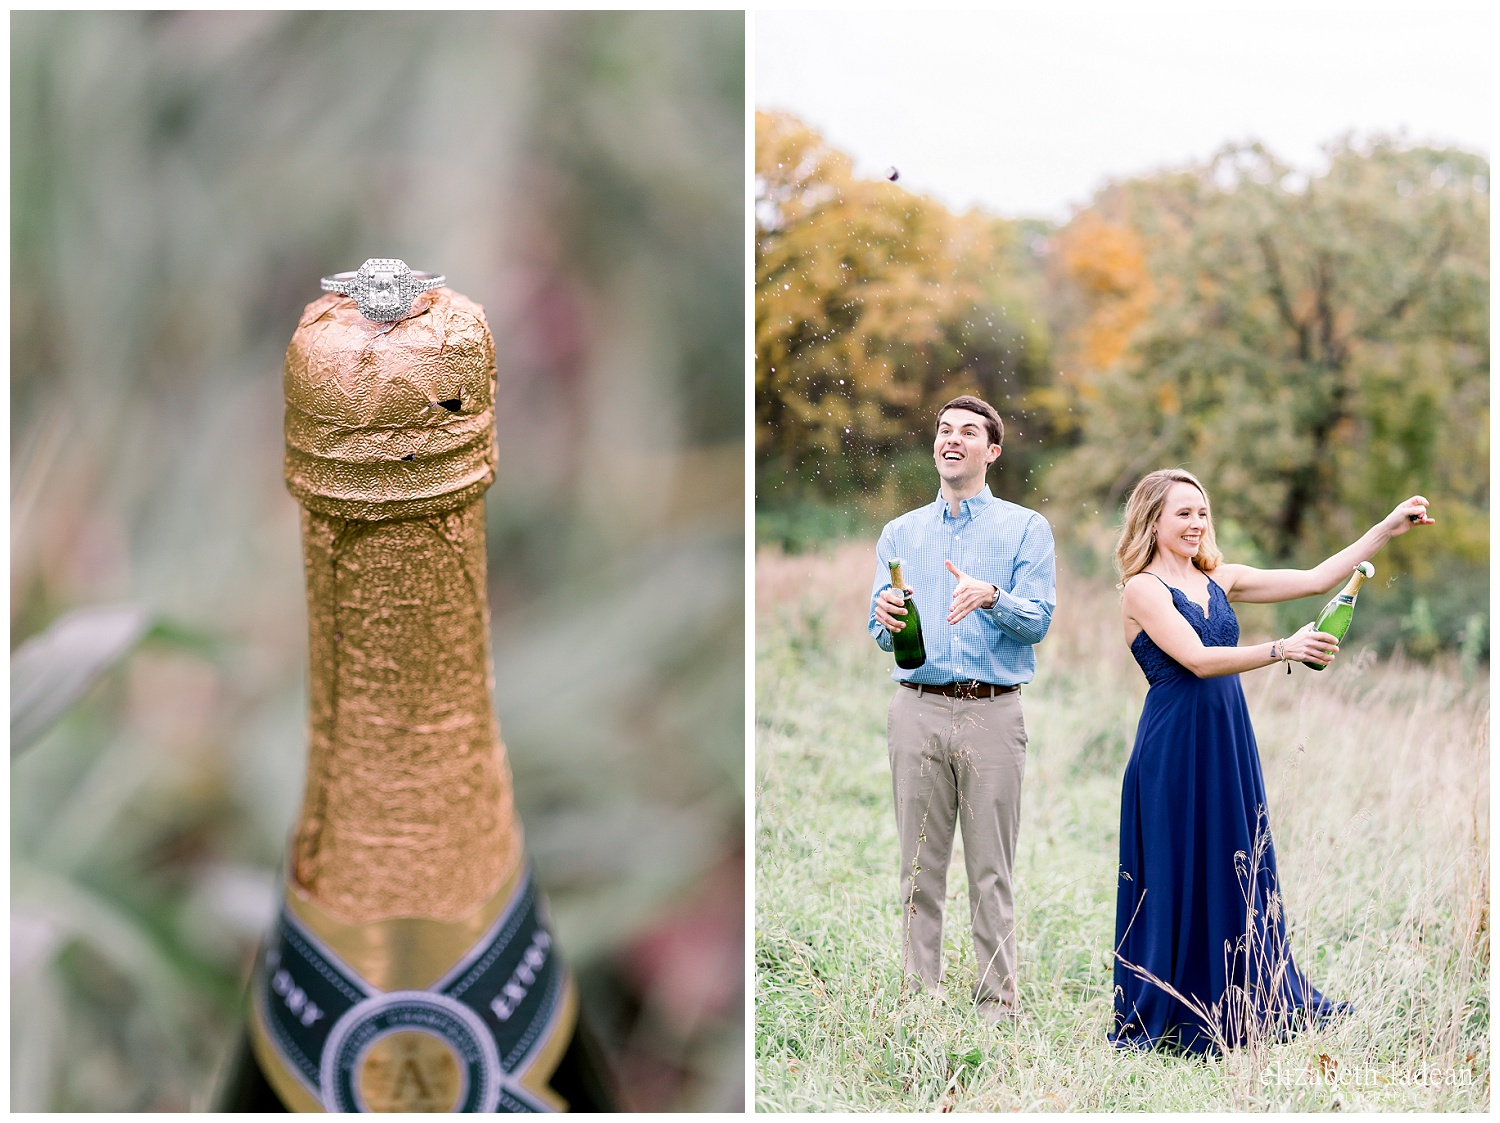 Colorful-Fall-Engagement-Photos-in-KC-C+B-2018-elizabeth-ladean-photography-photo_1807.jpg